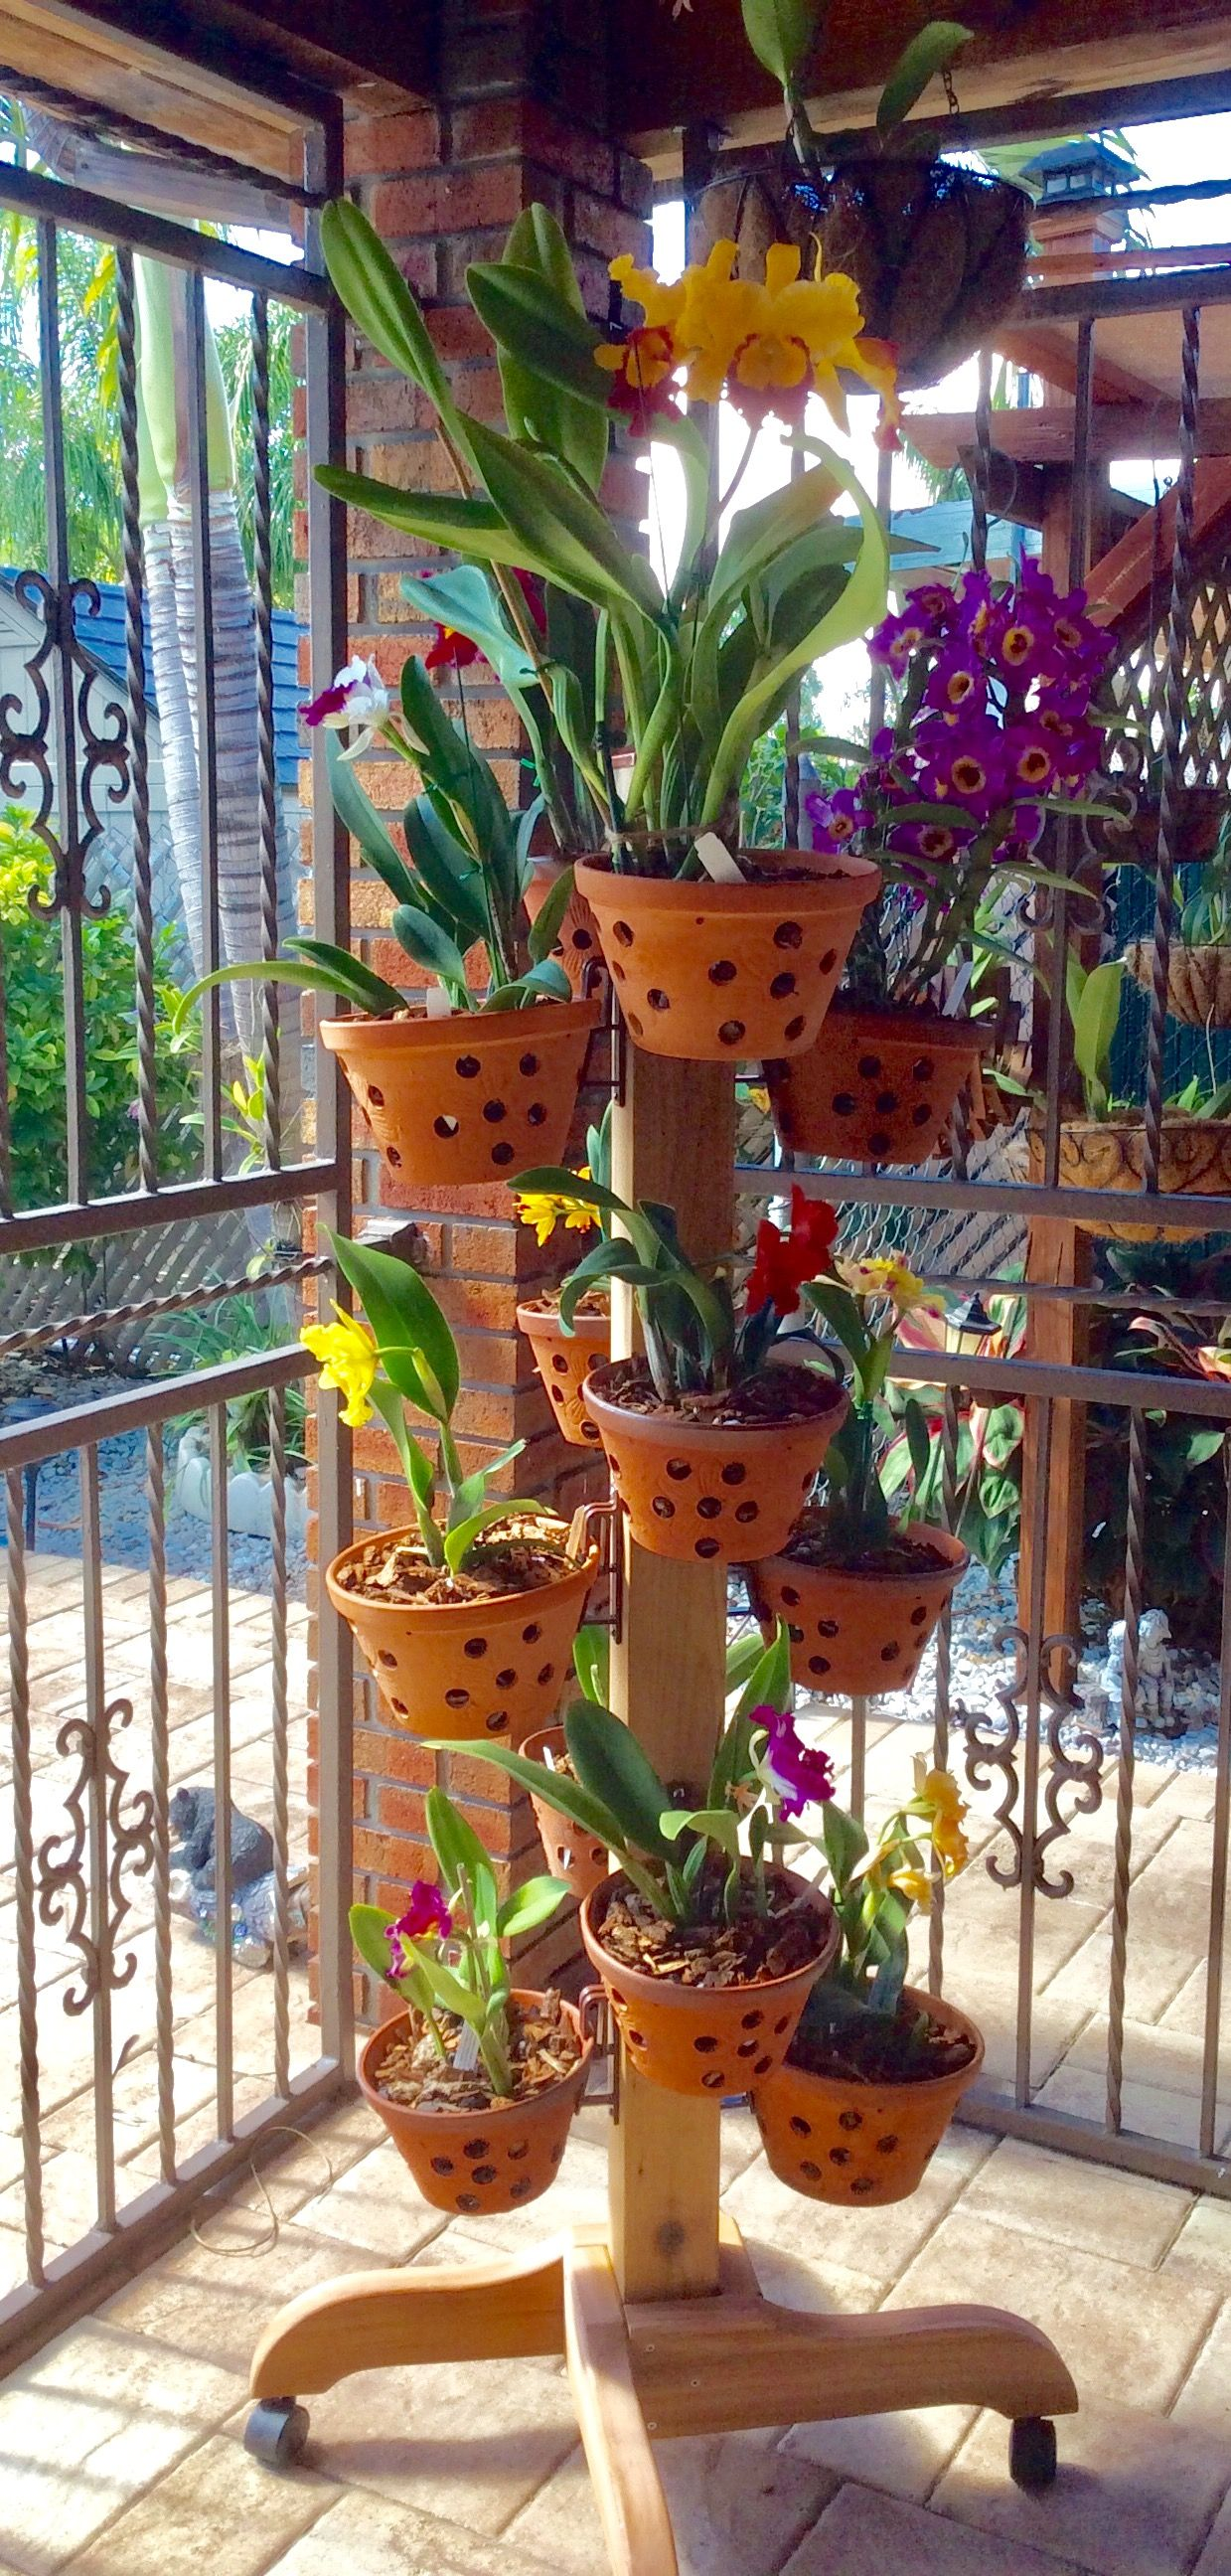 Vertical garden design with orchids space saving backyard landscaping - 12 Amazing Ideas For Indoor Herb Gardens